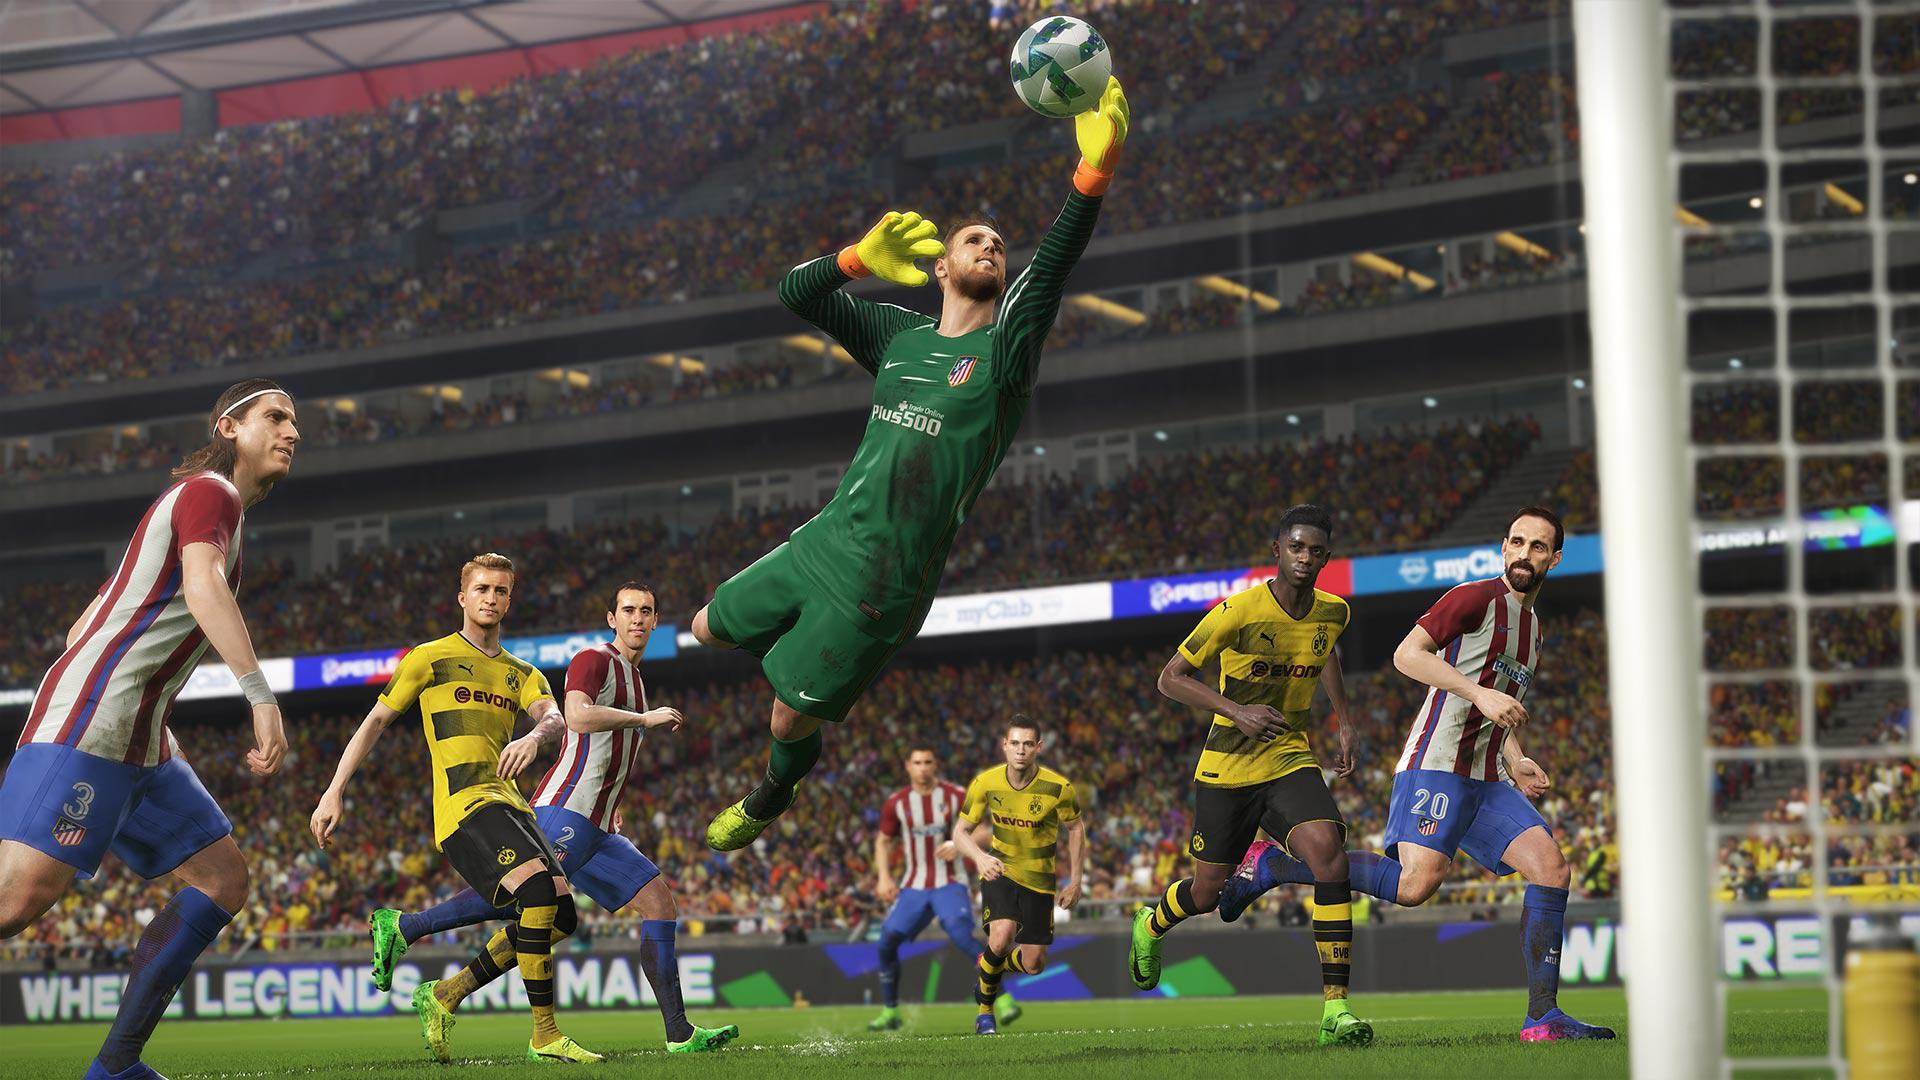 PES 2018 runs on the Fox Engine – which also powered the stunning Metal Gear Solid V